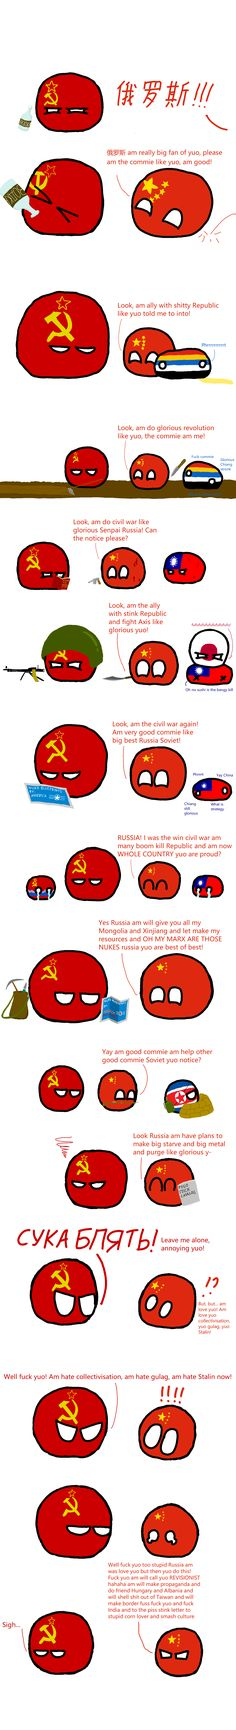 Wiggly mouse-drawn comics where balls represent different countries. Poland Country, Funny Comics, Hetalia, Countries, Freedom, Funny Pictures, Jokes, Humor, History